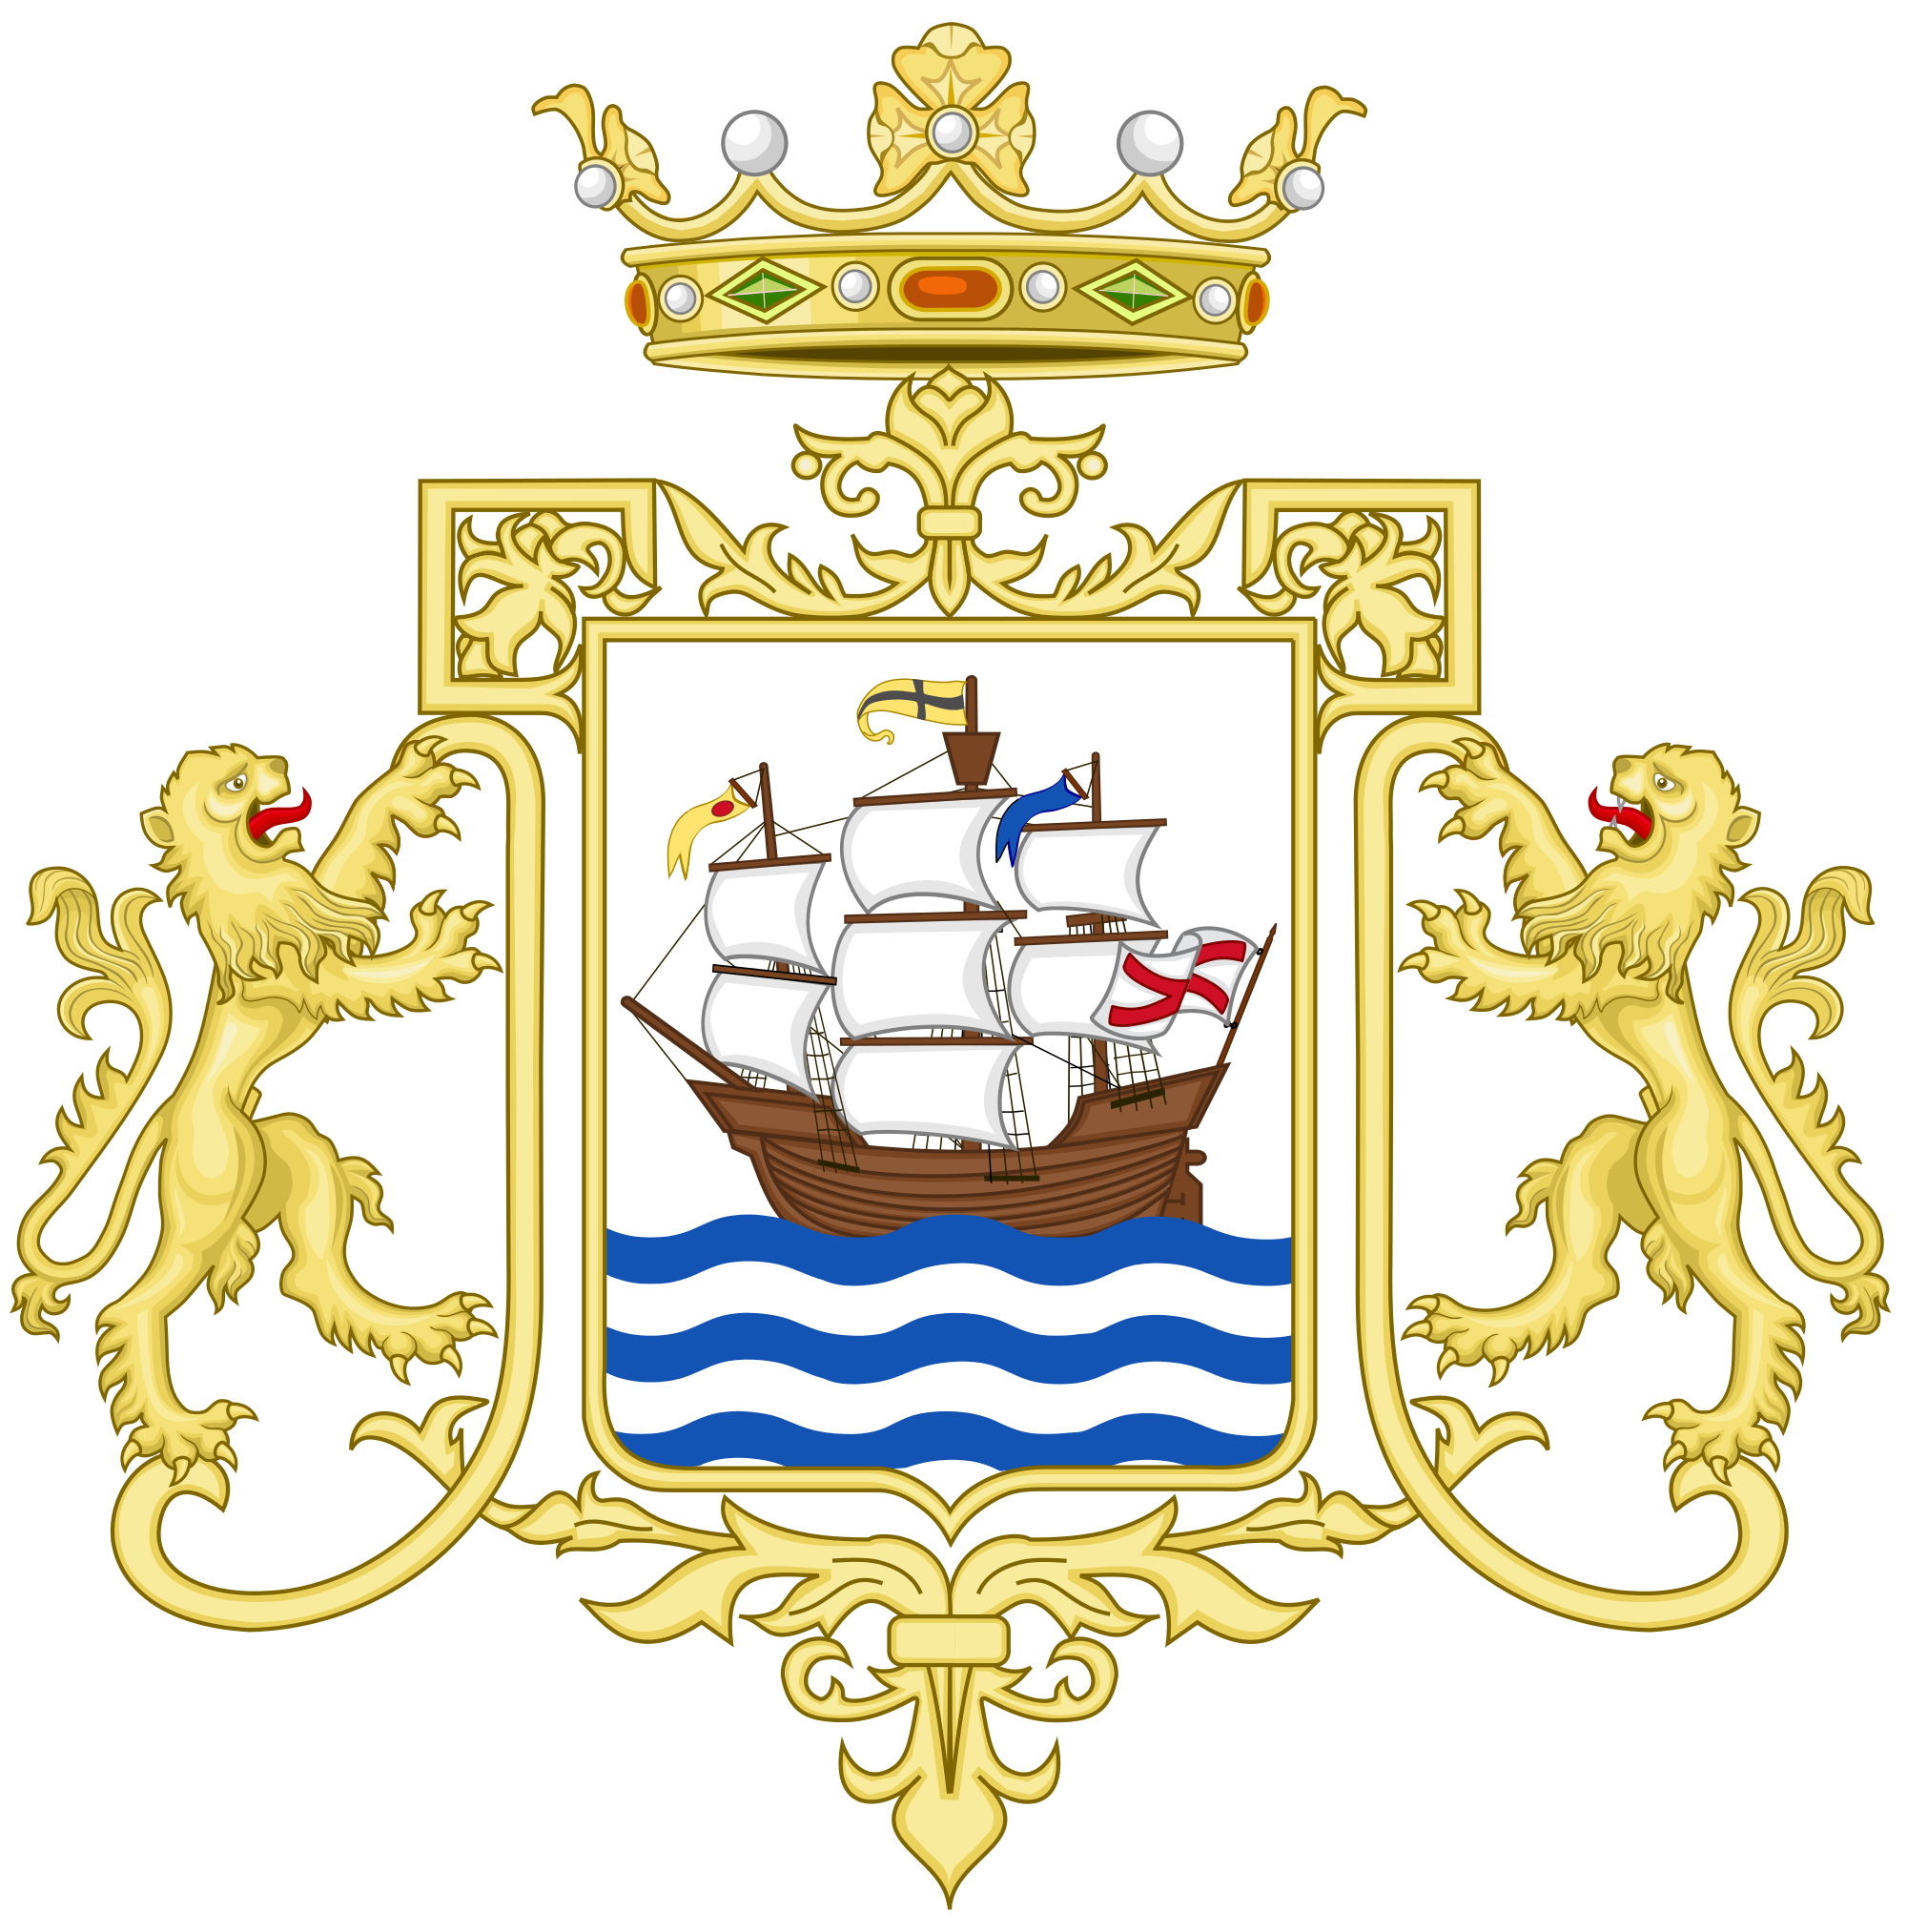 File:Coat of Arms of Portugalete.svg.